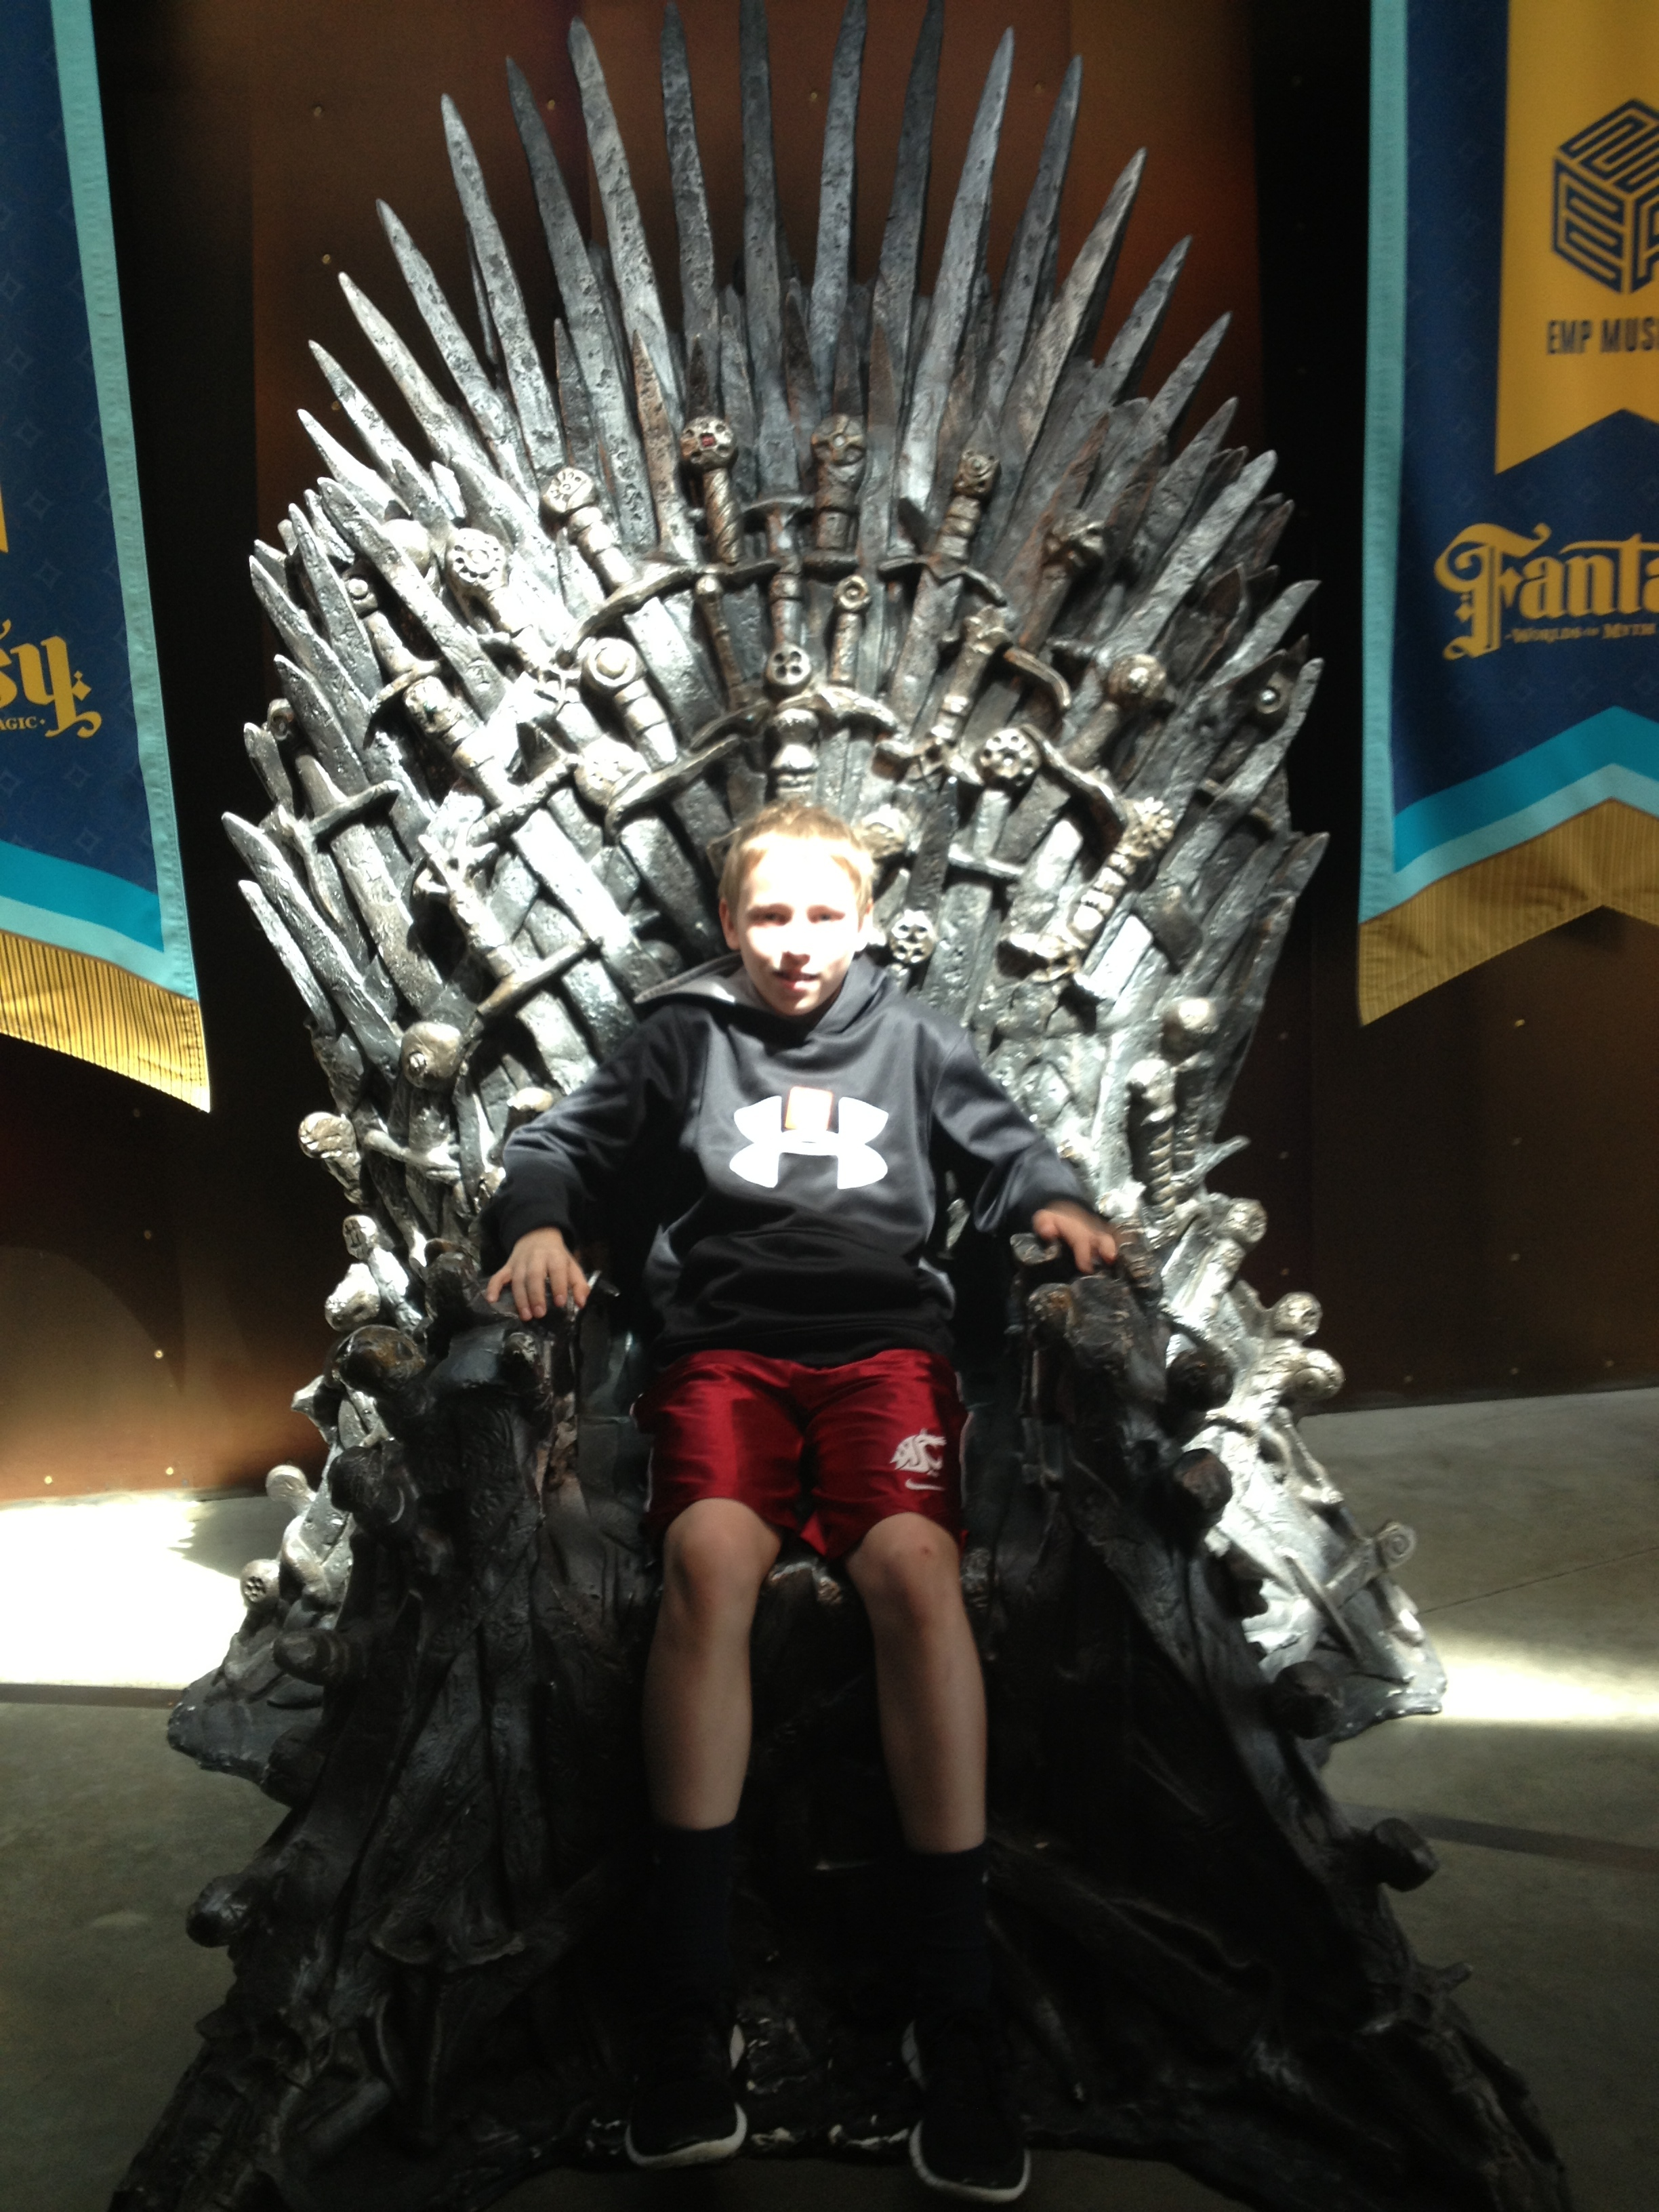 Game Of Thrones Chair By Epicdude48 On DeviantArt